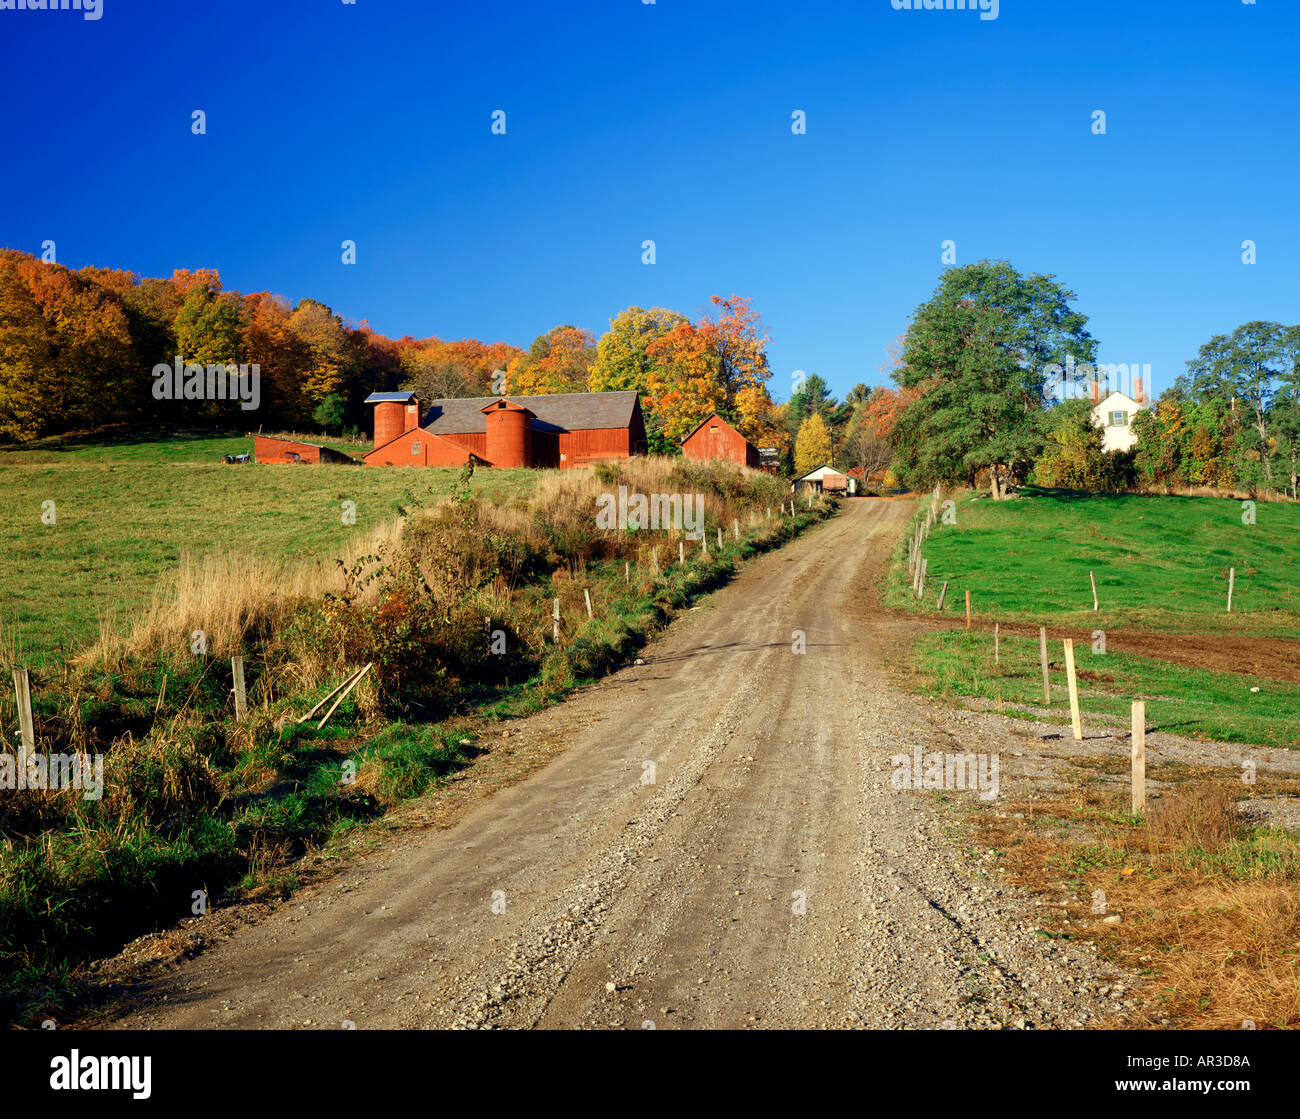 Guilford England Stock Photos & Guilford England Stock Images - Alamy